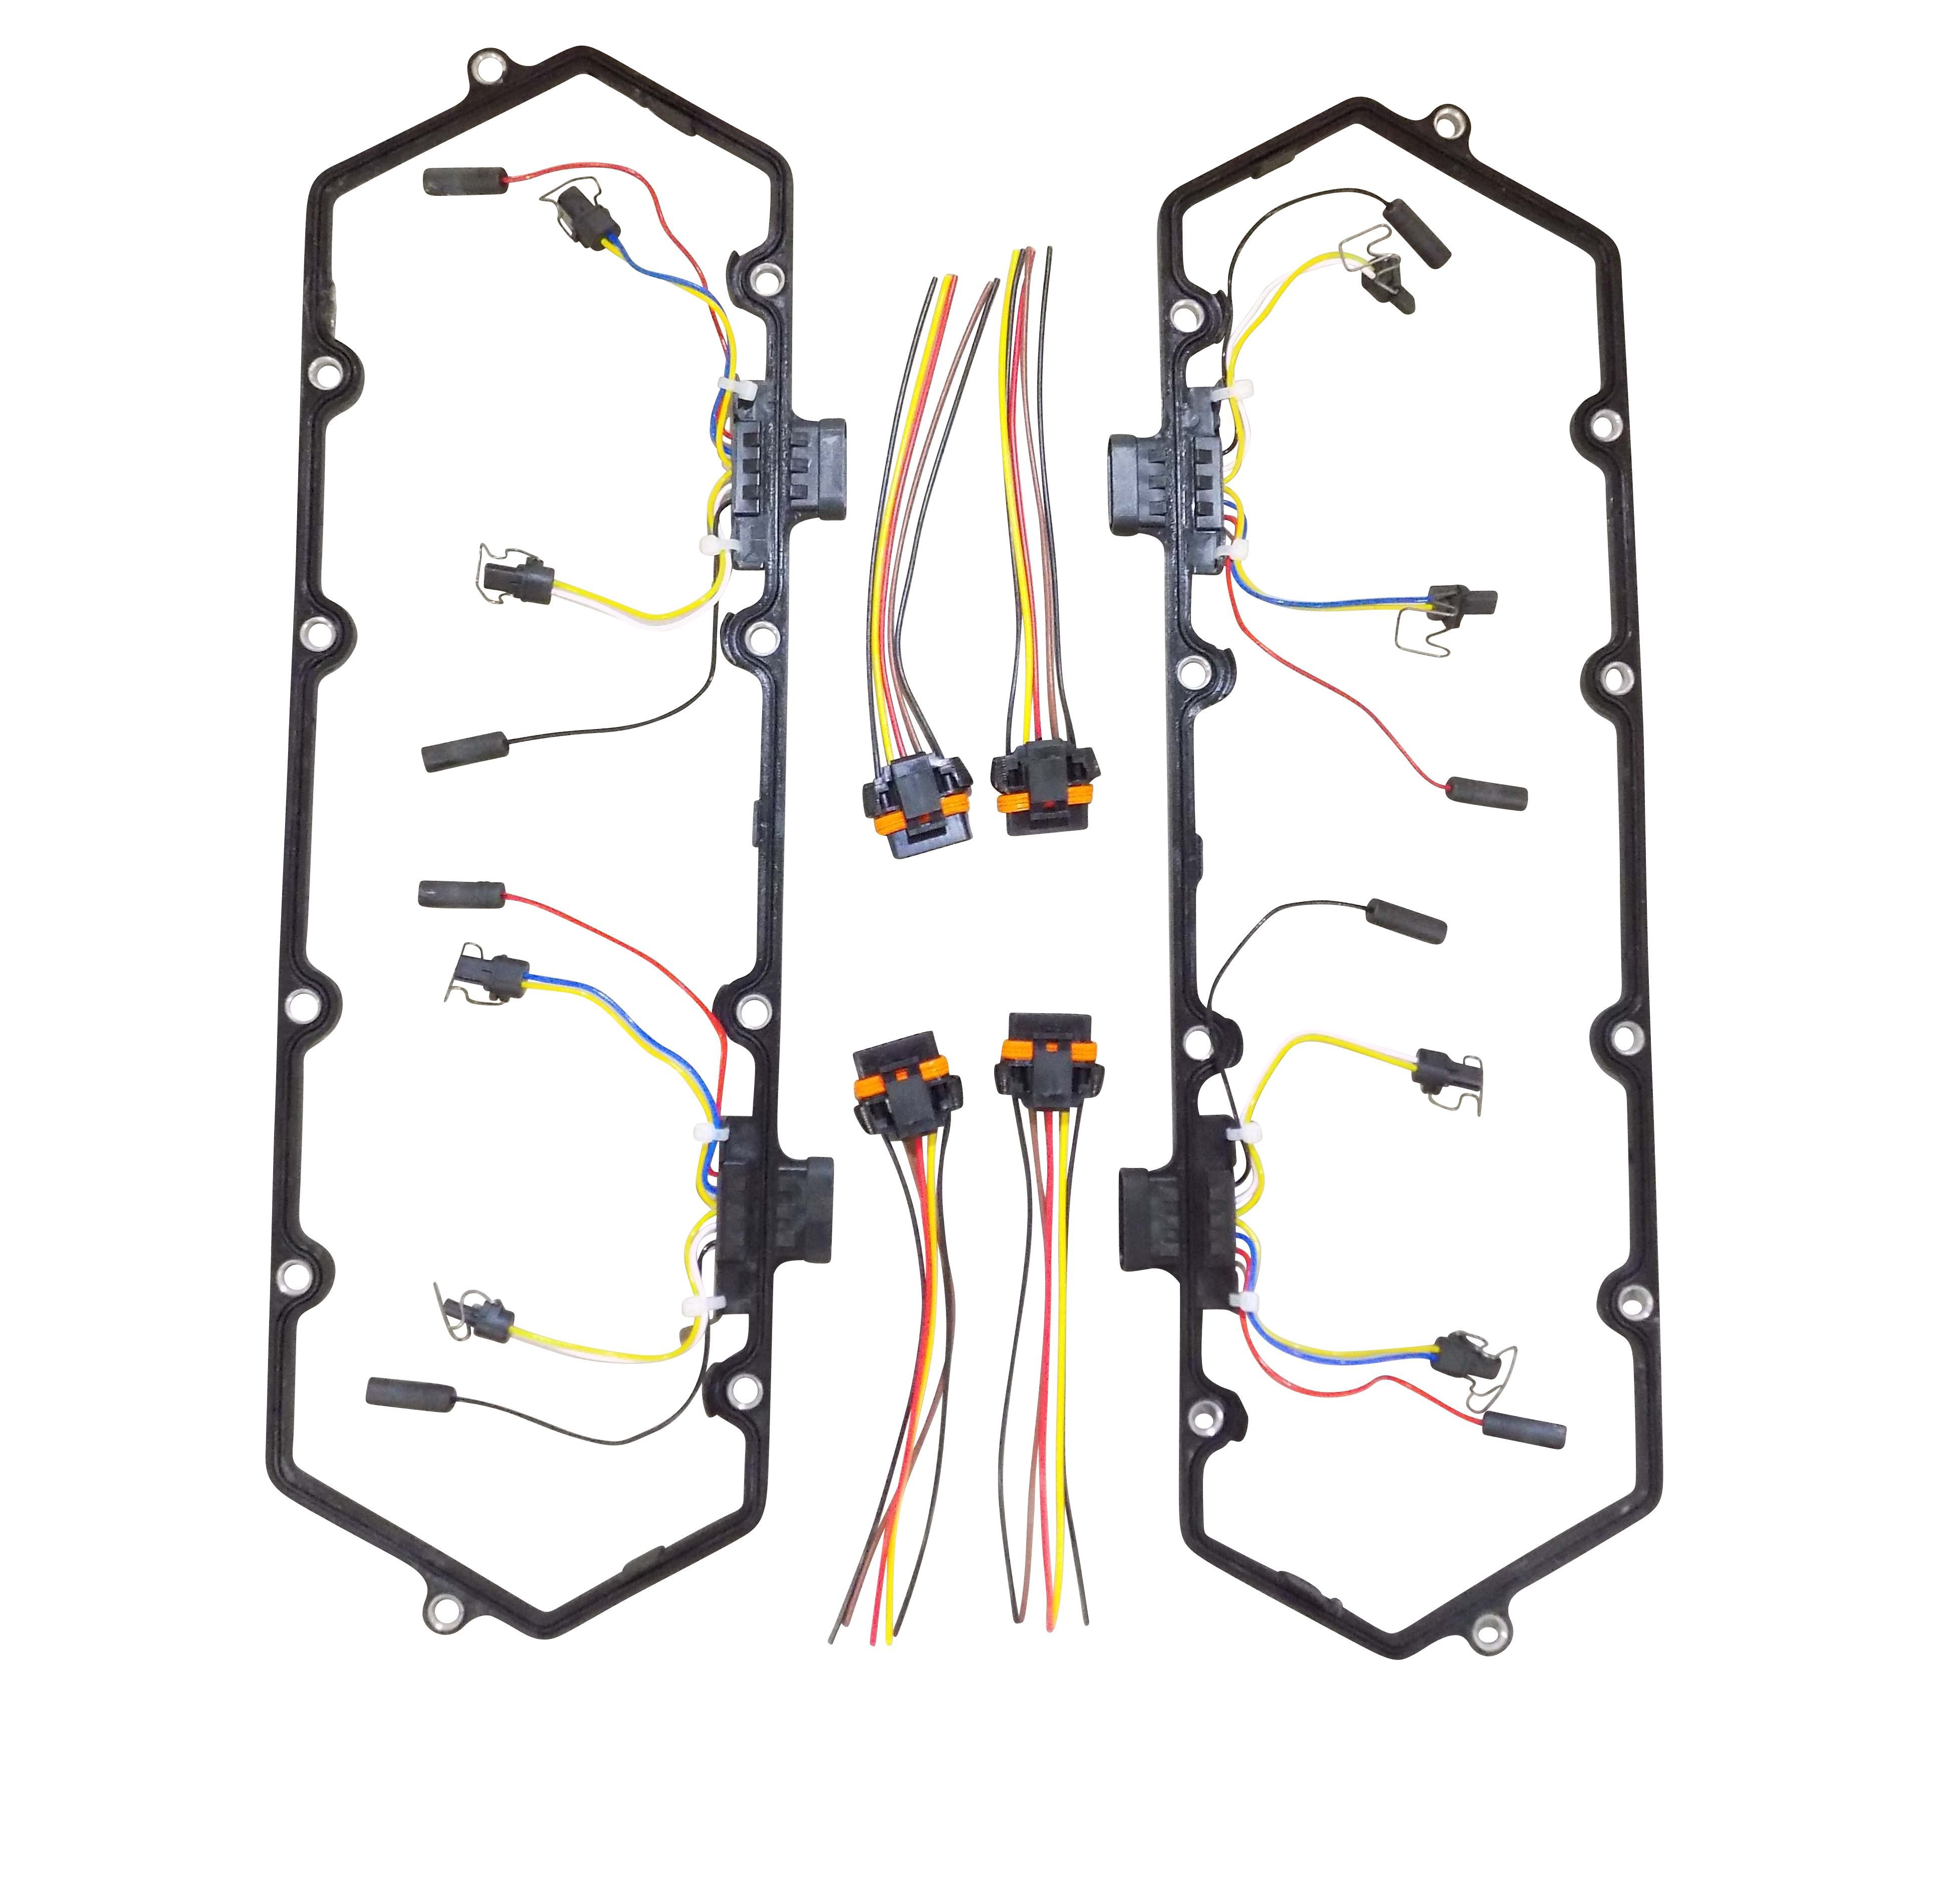 Valve Cover Gasket Set Wiring Pigtail Harnesses W Connectors 73l Duramax Harness 1994 97